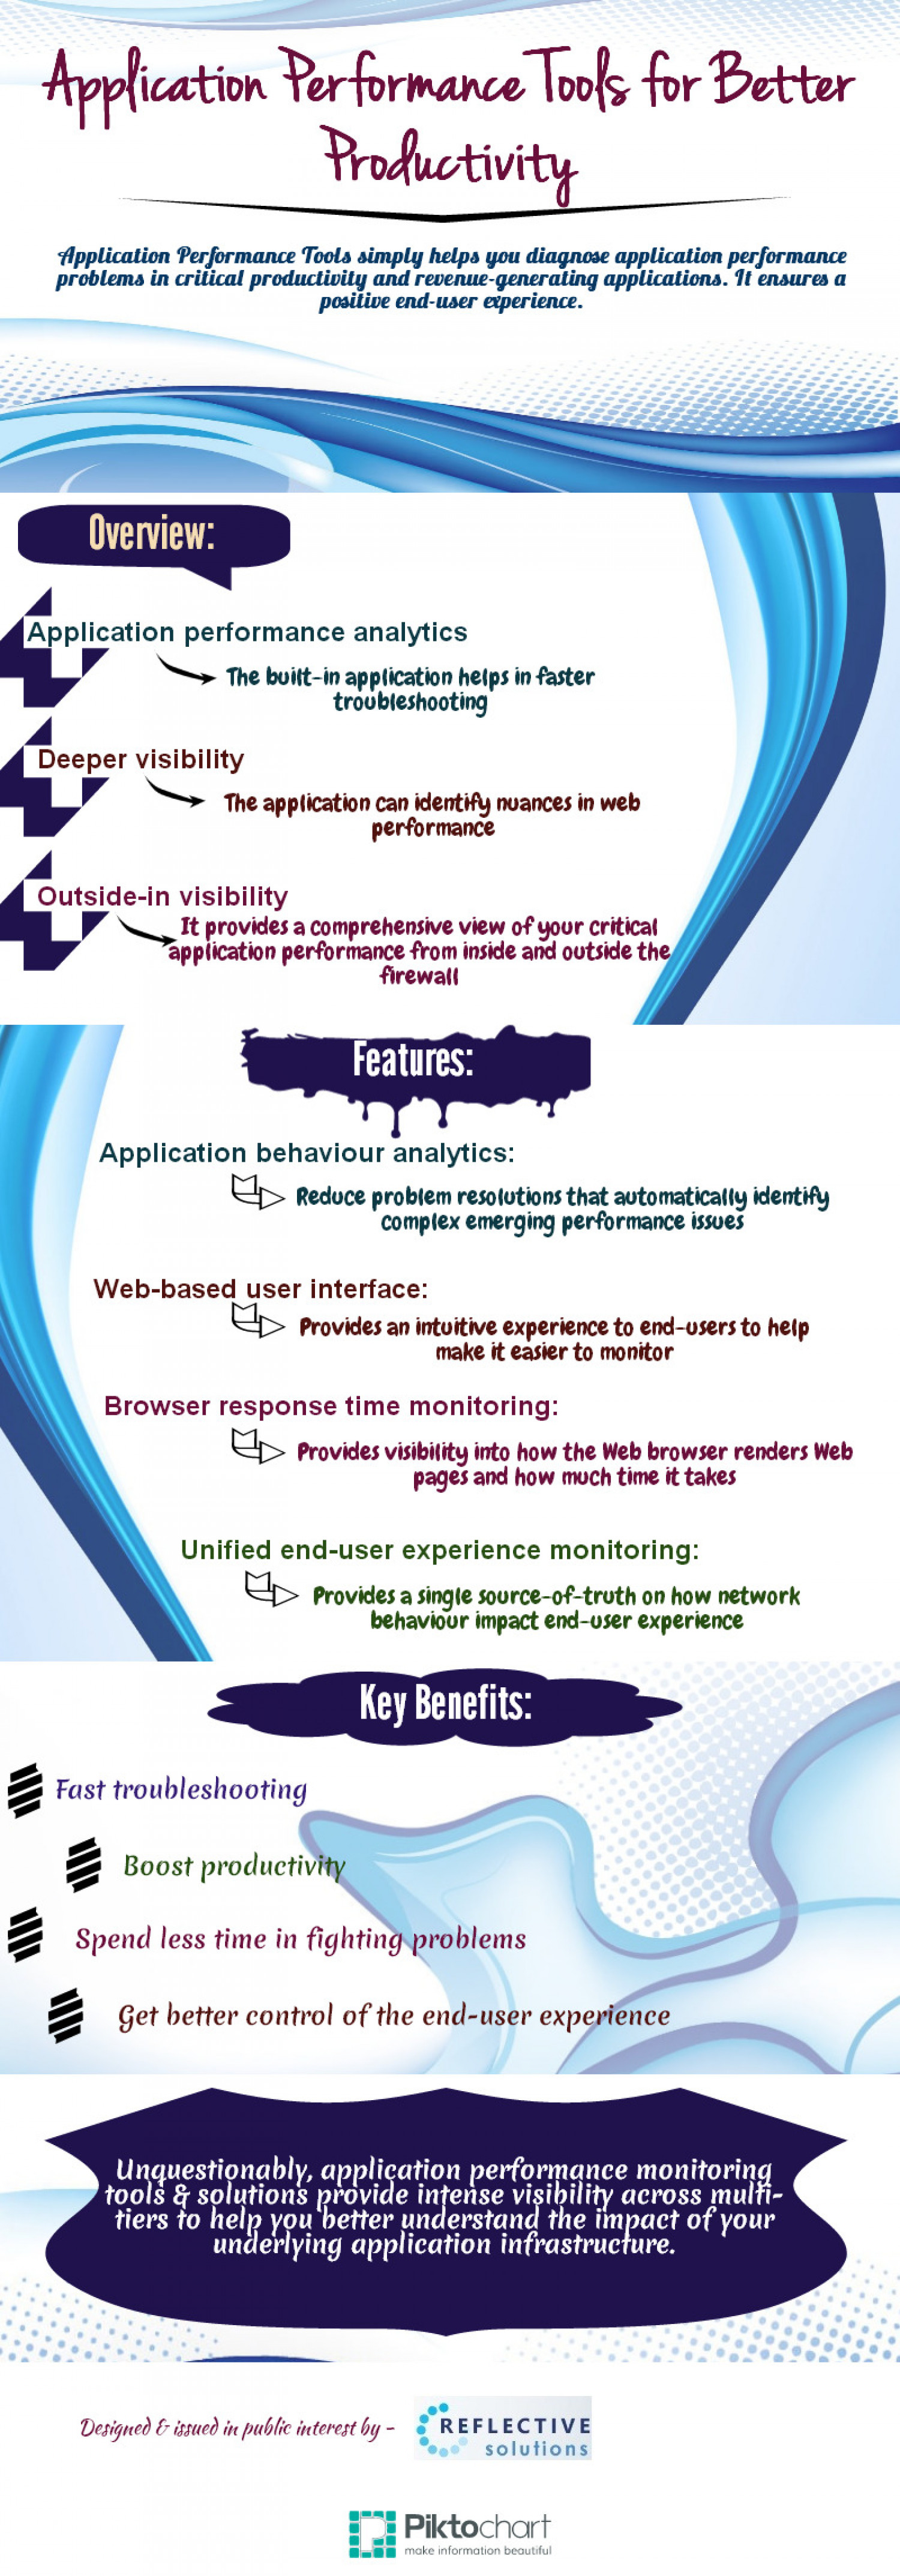 Application Performance Tools for Better Productivity Infographic